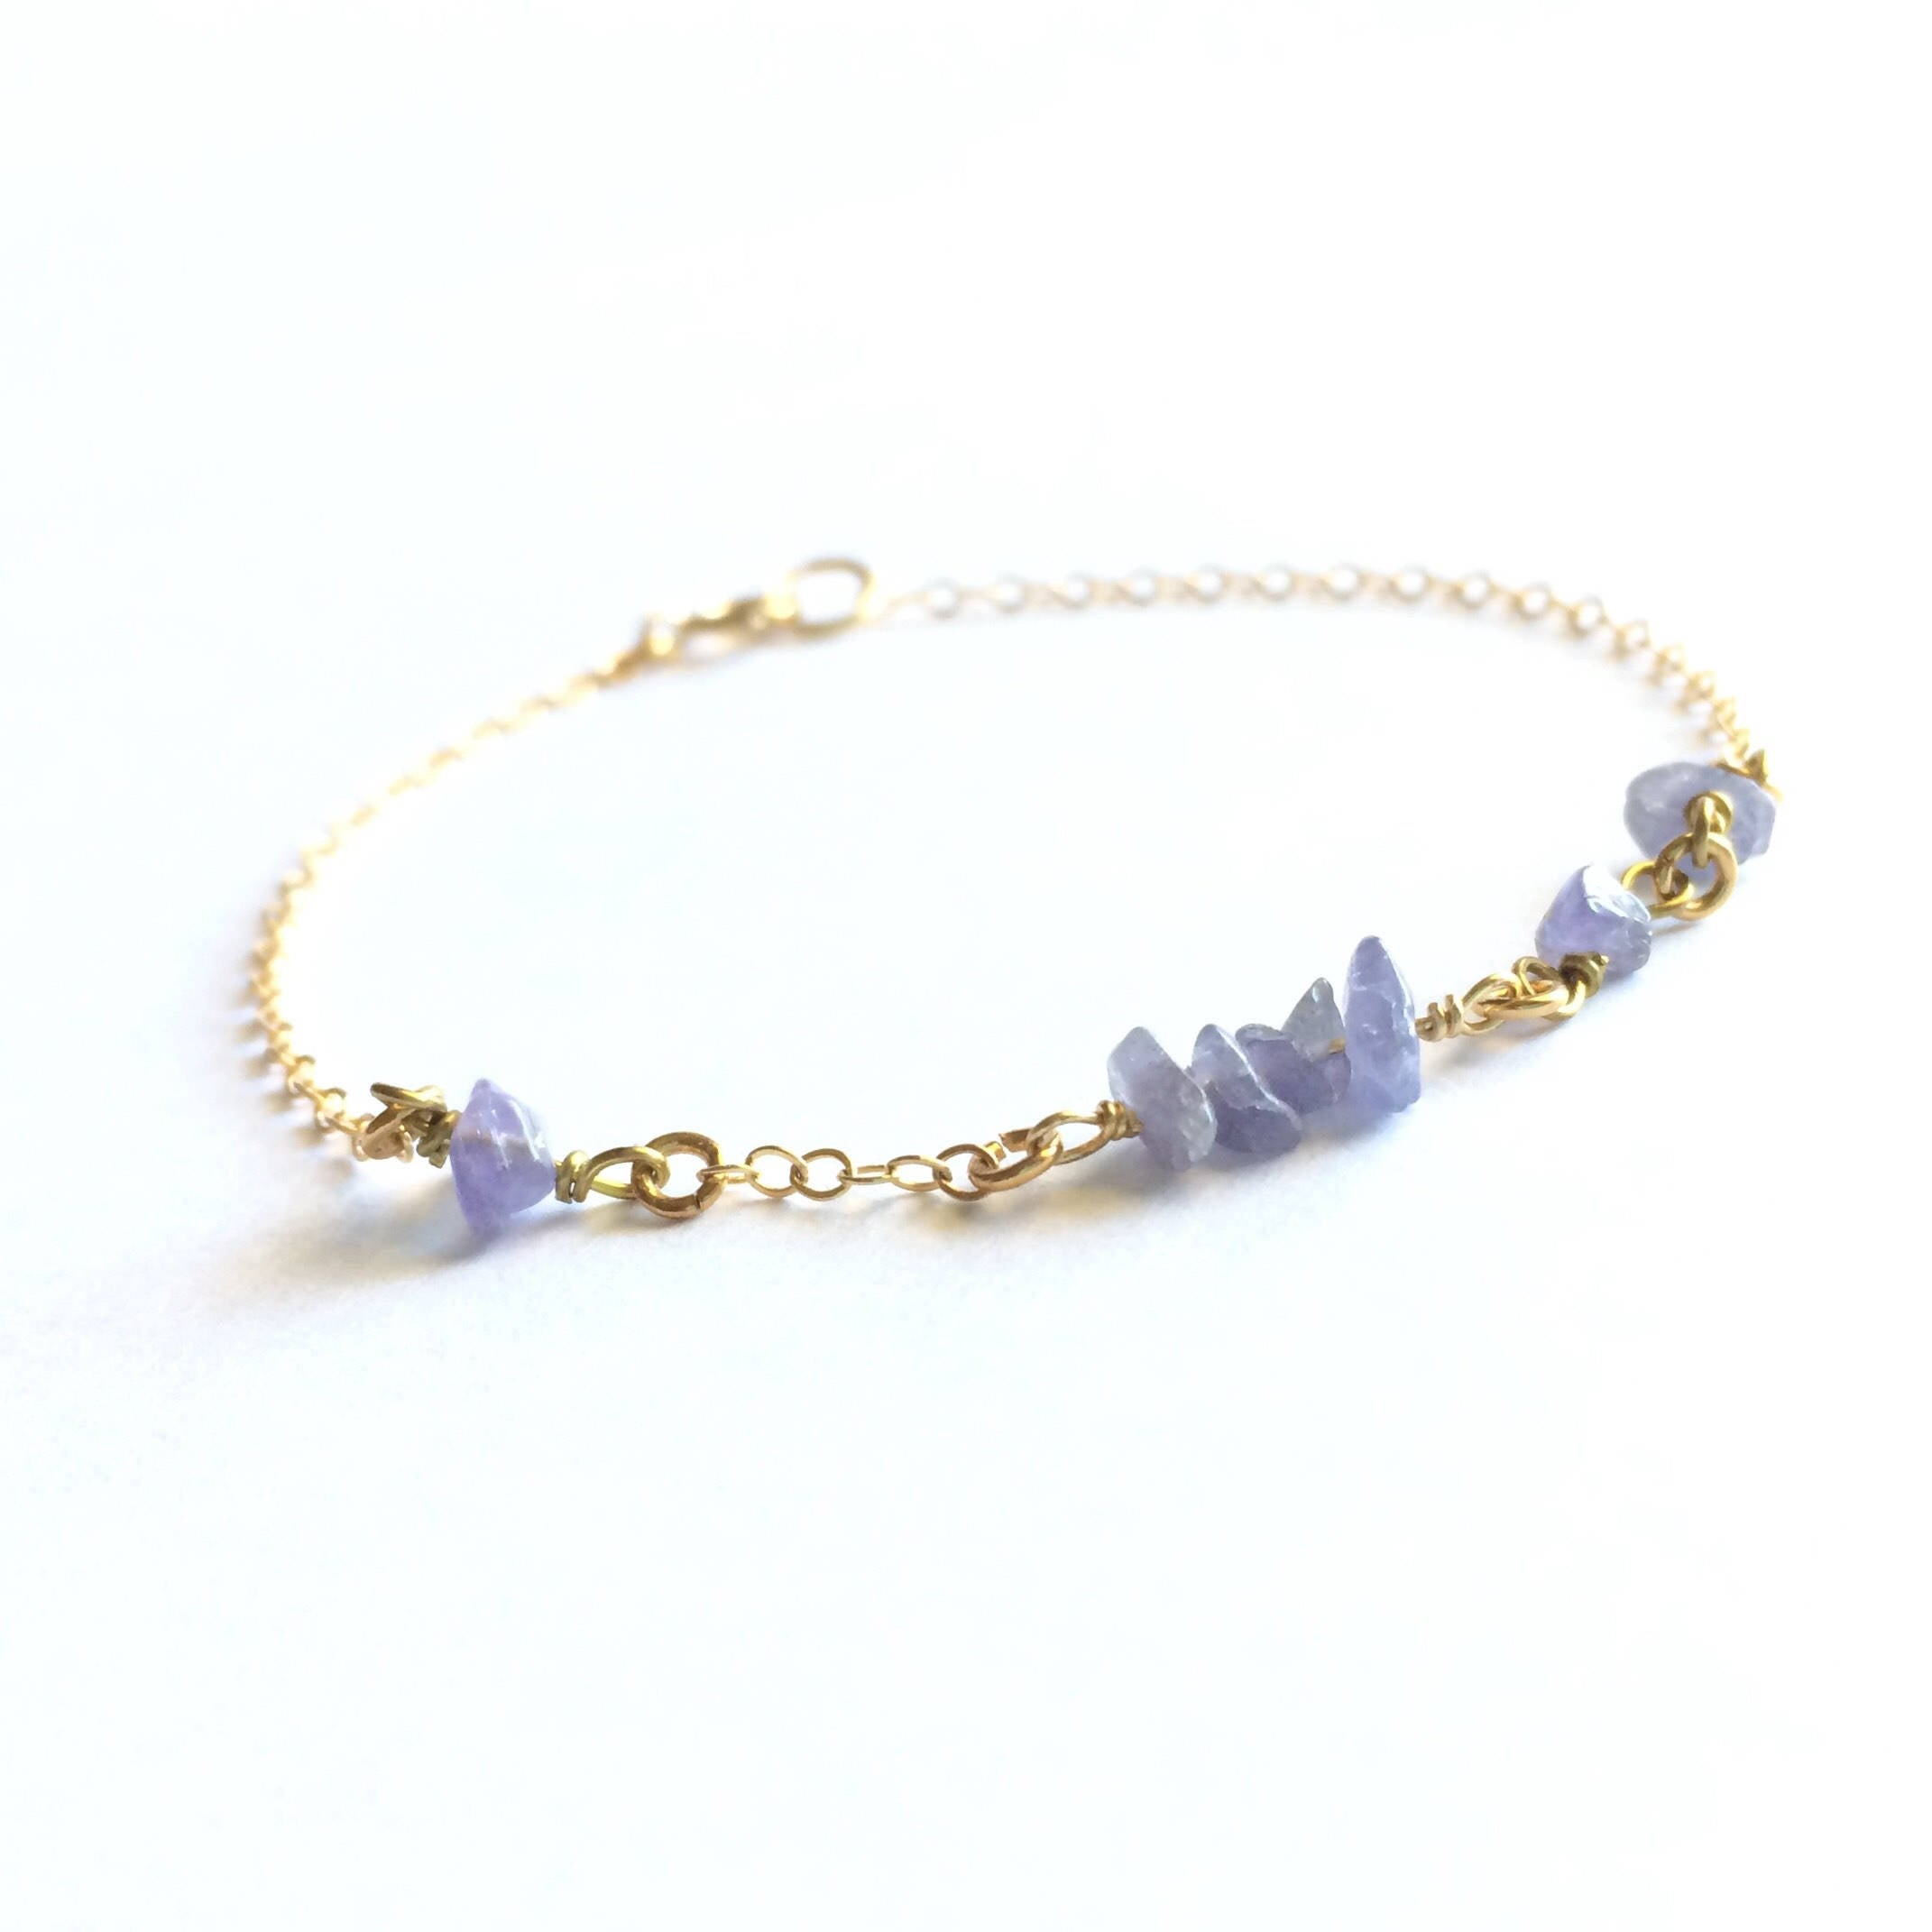 Tiny Delicate Tanzanite Bracelet | IB Jewelry